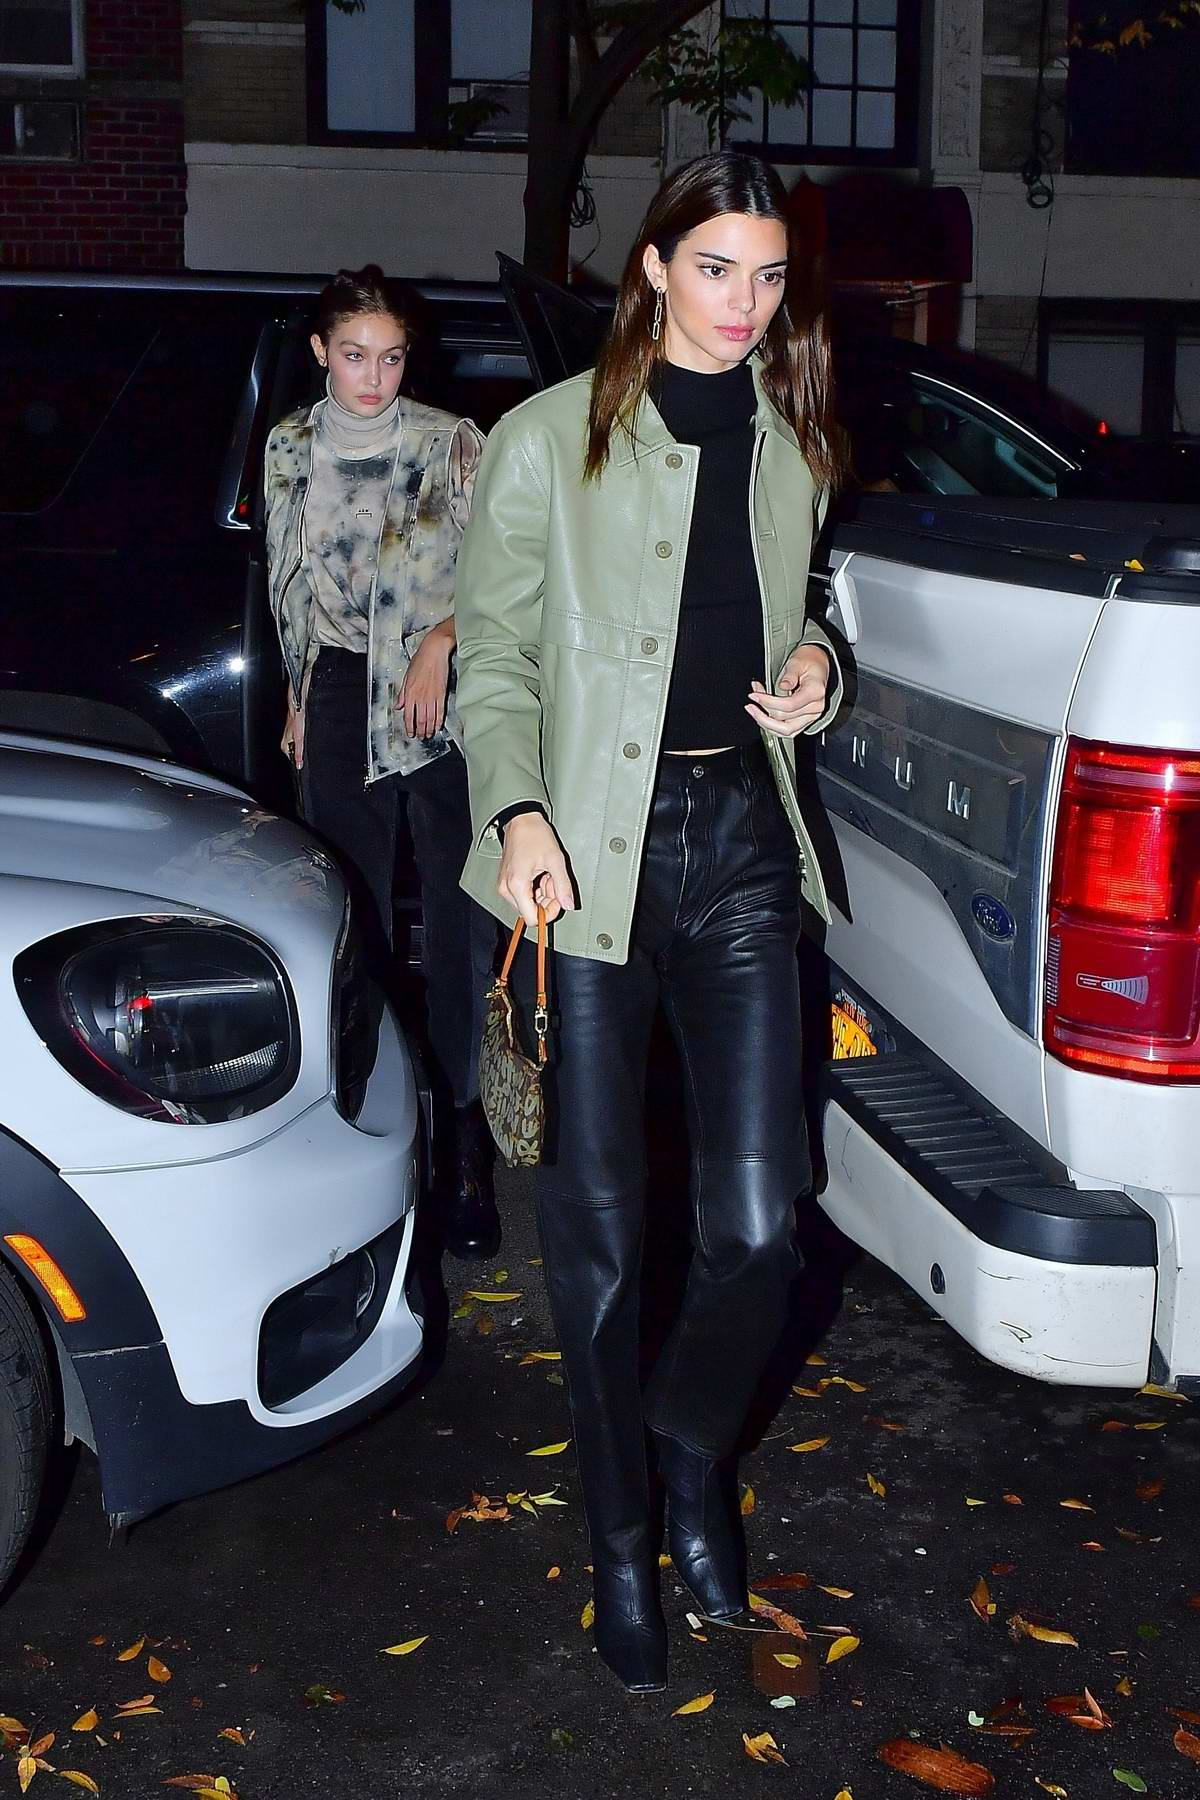 Kendall Jenner and Gigi Hadid head out for dinner together at Carbone Italian restaurant in New York City